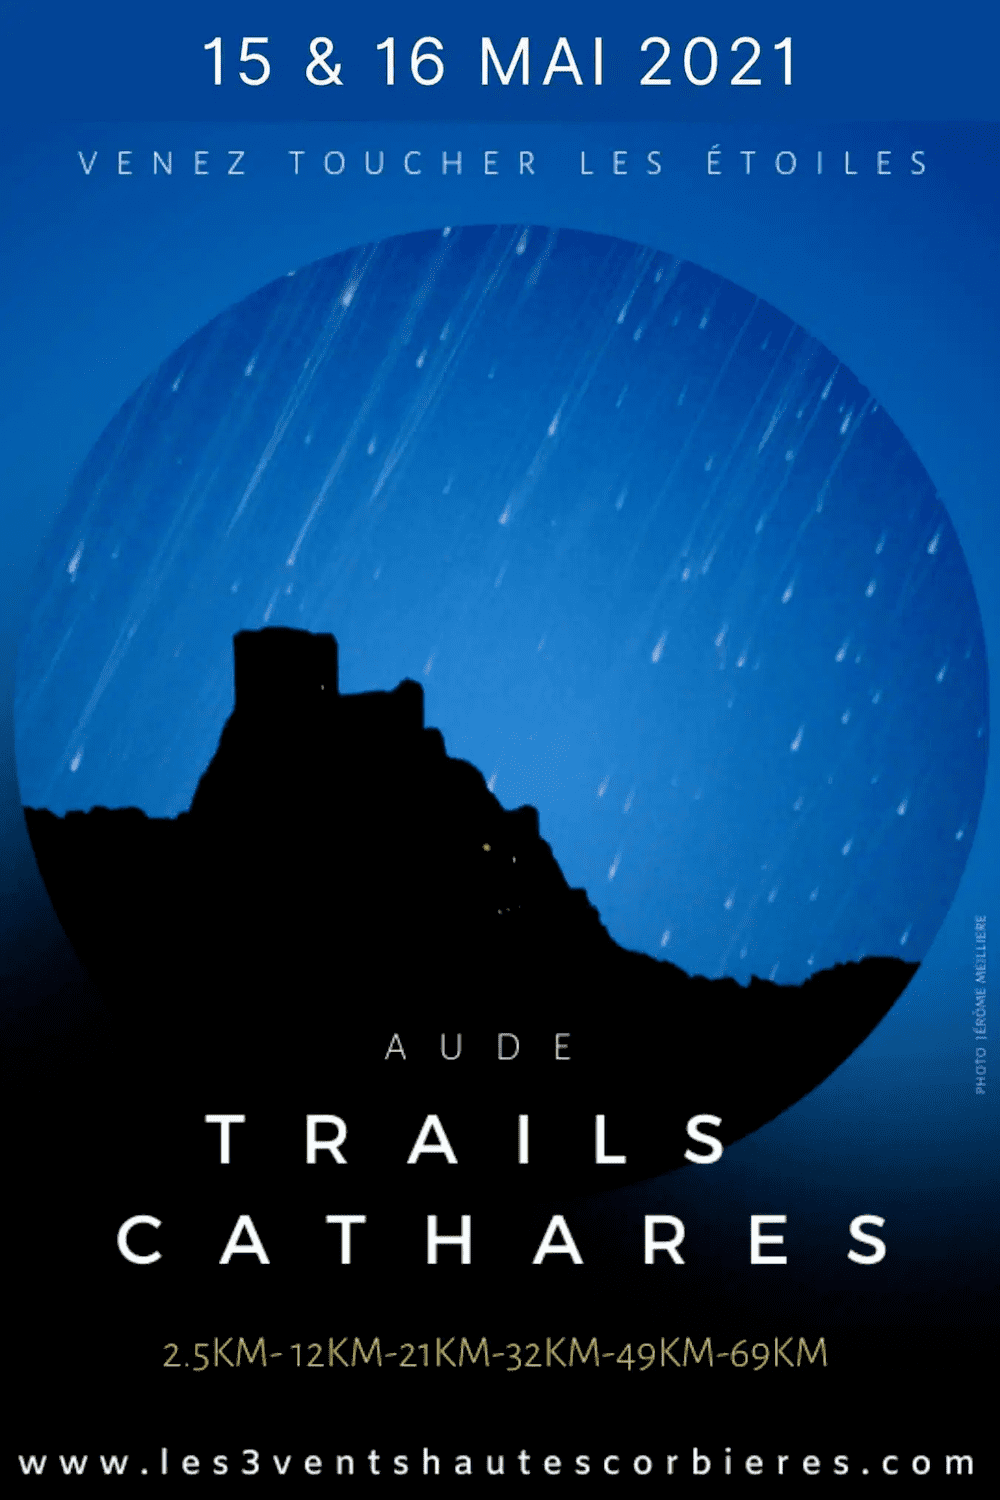 Aude Trails Cathares 2021